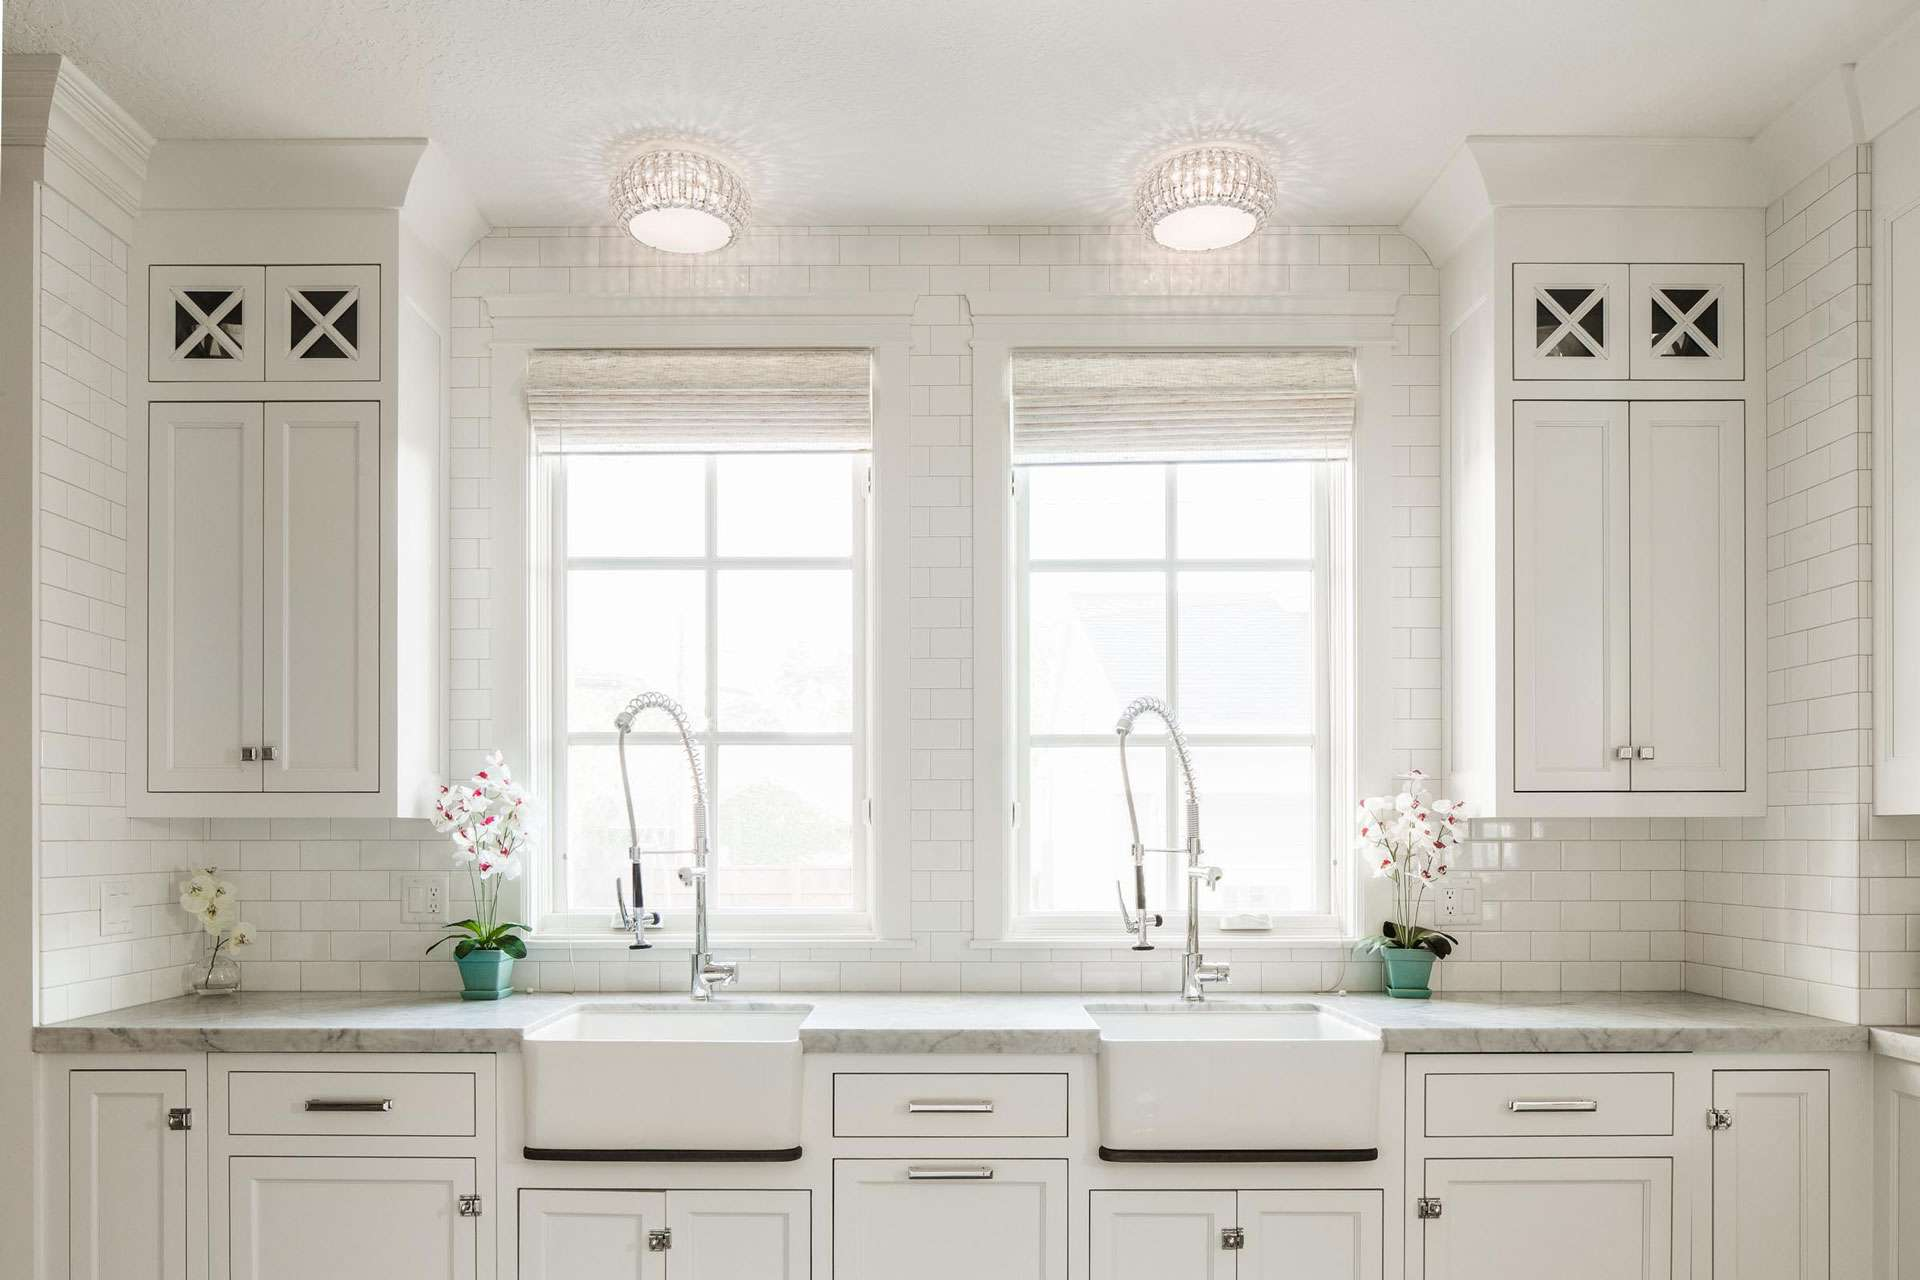 Beautiful white kitchens house of hargrove - White kitchens pinterest ...